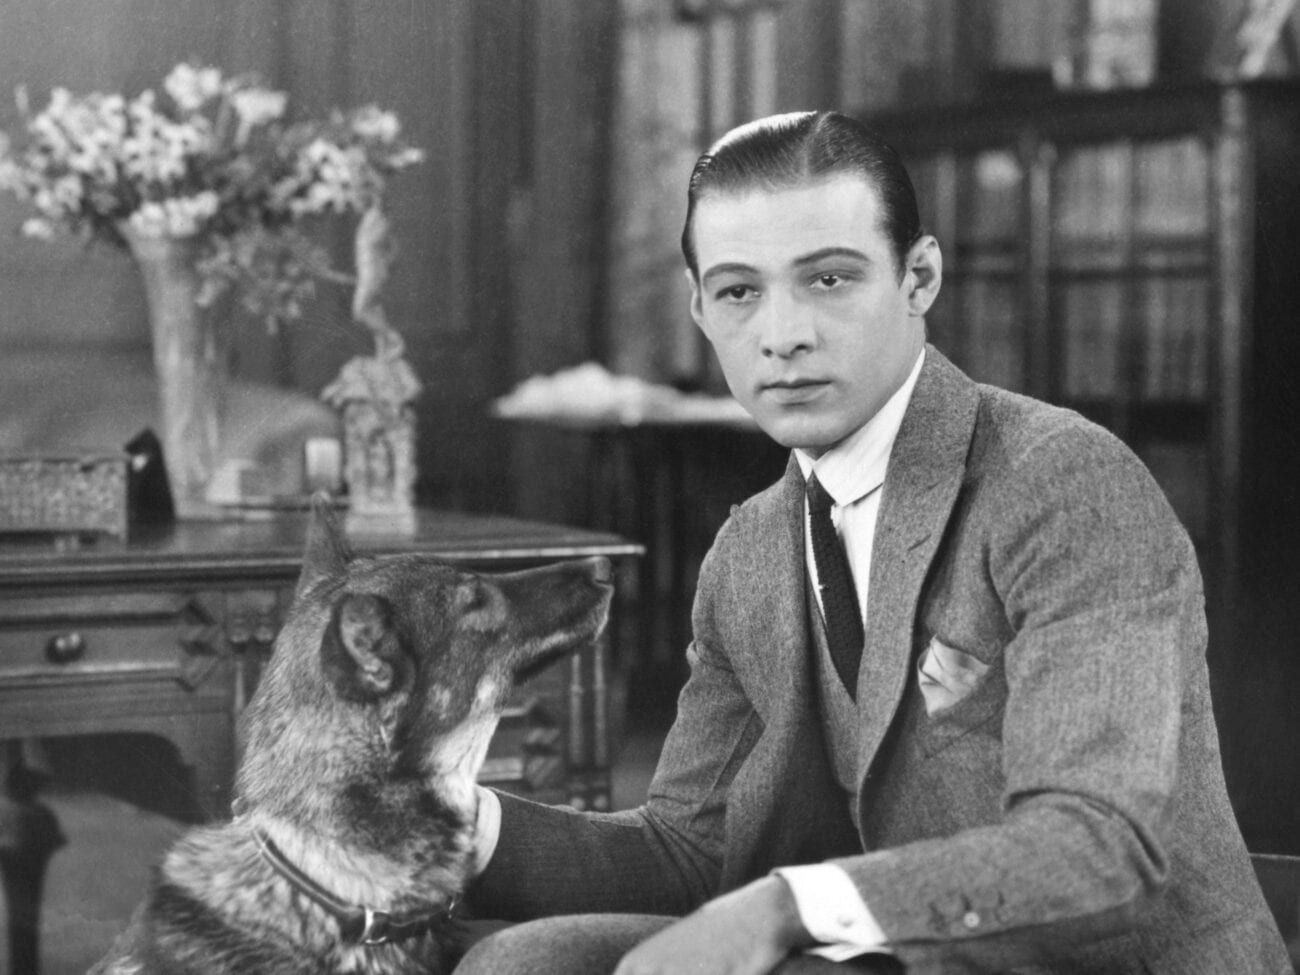 Since the 1920s, Rudolph Valentino's ring has caused its wearers' luck to run out. Here's a list of cursed Hollywood actors.